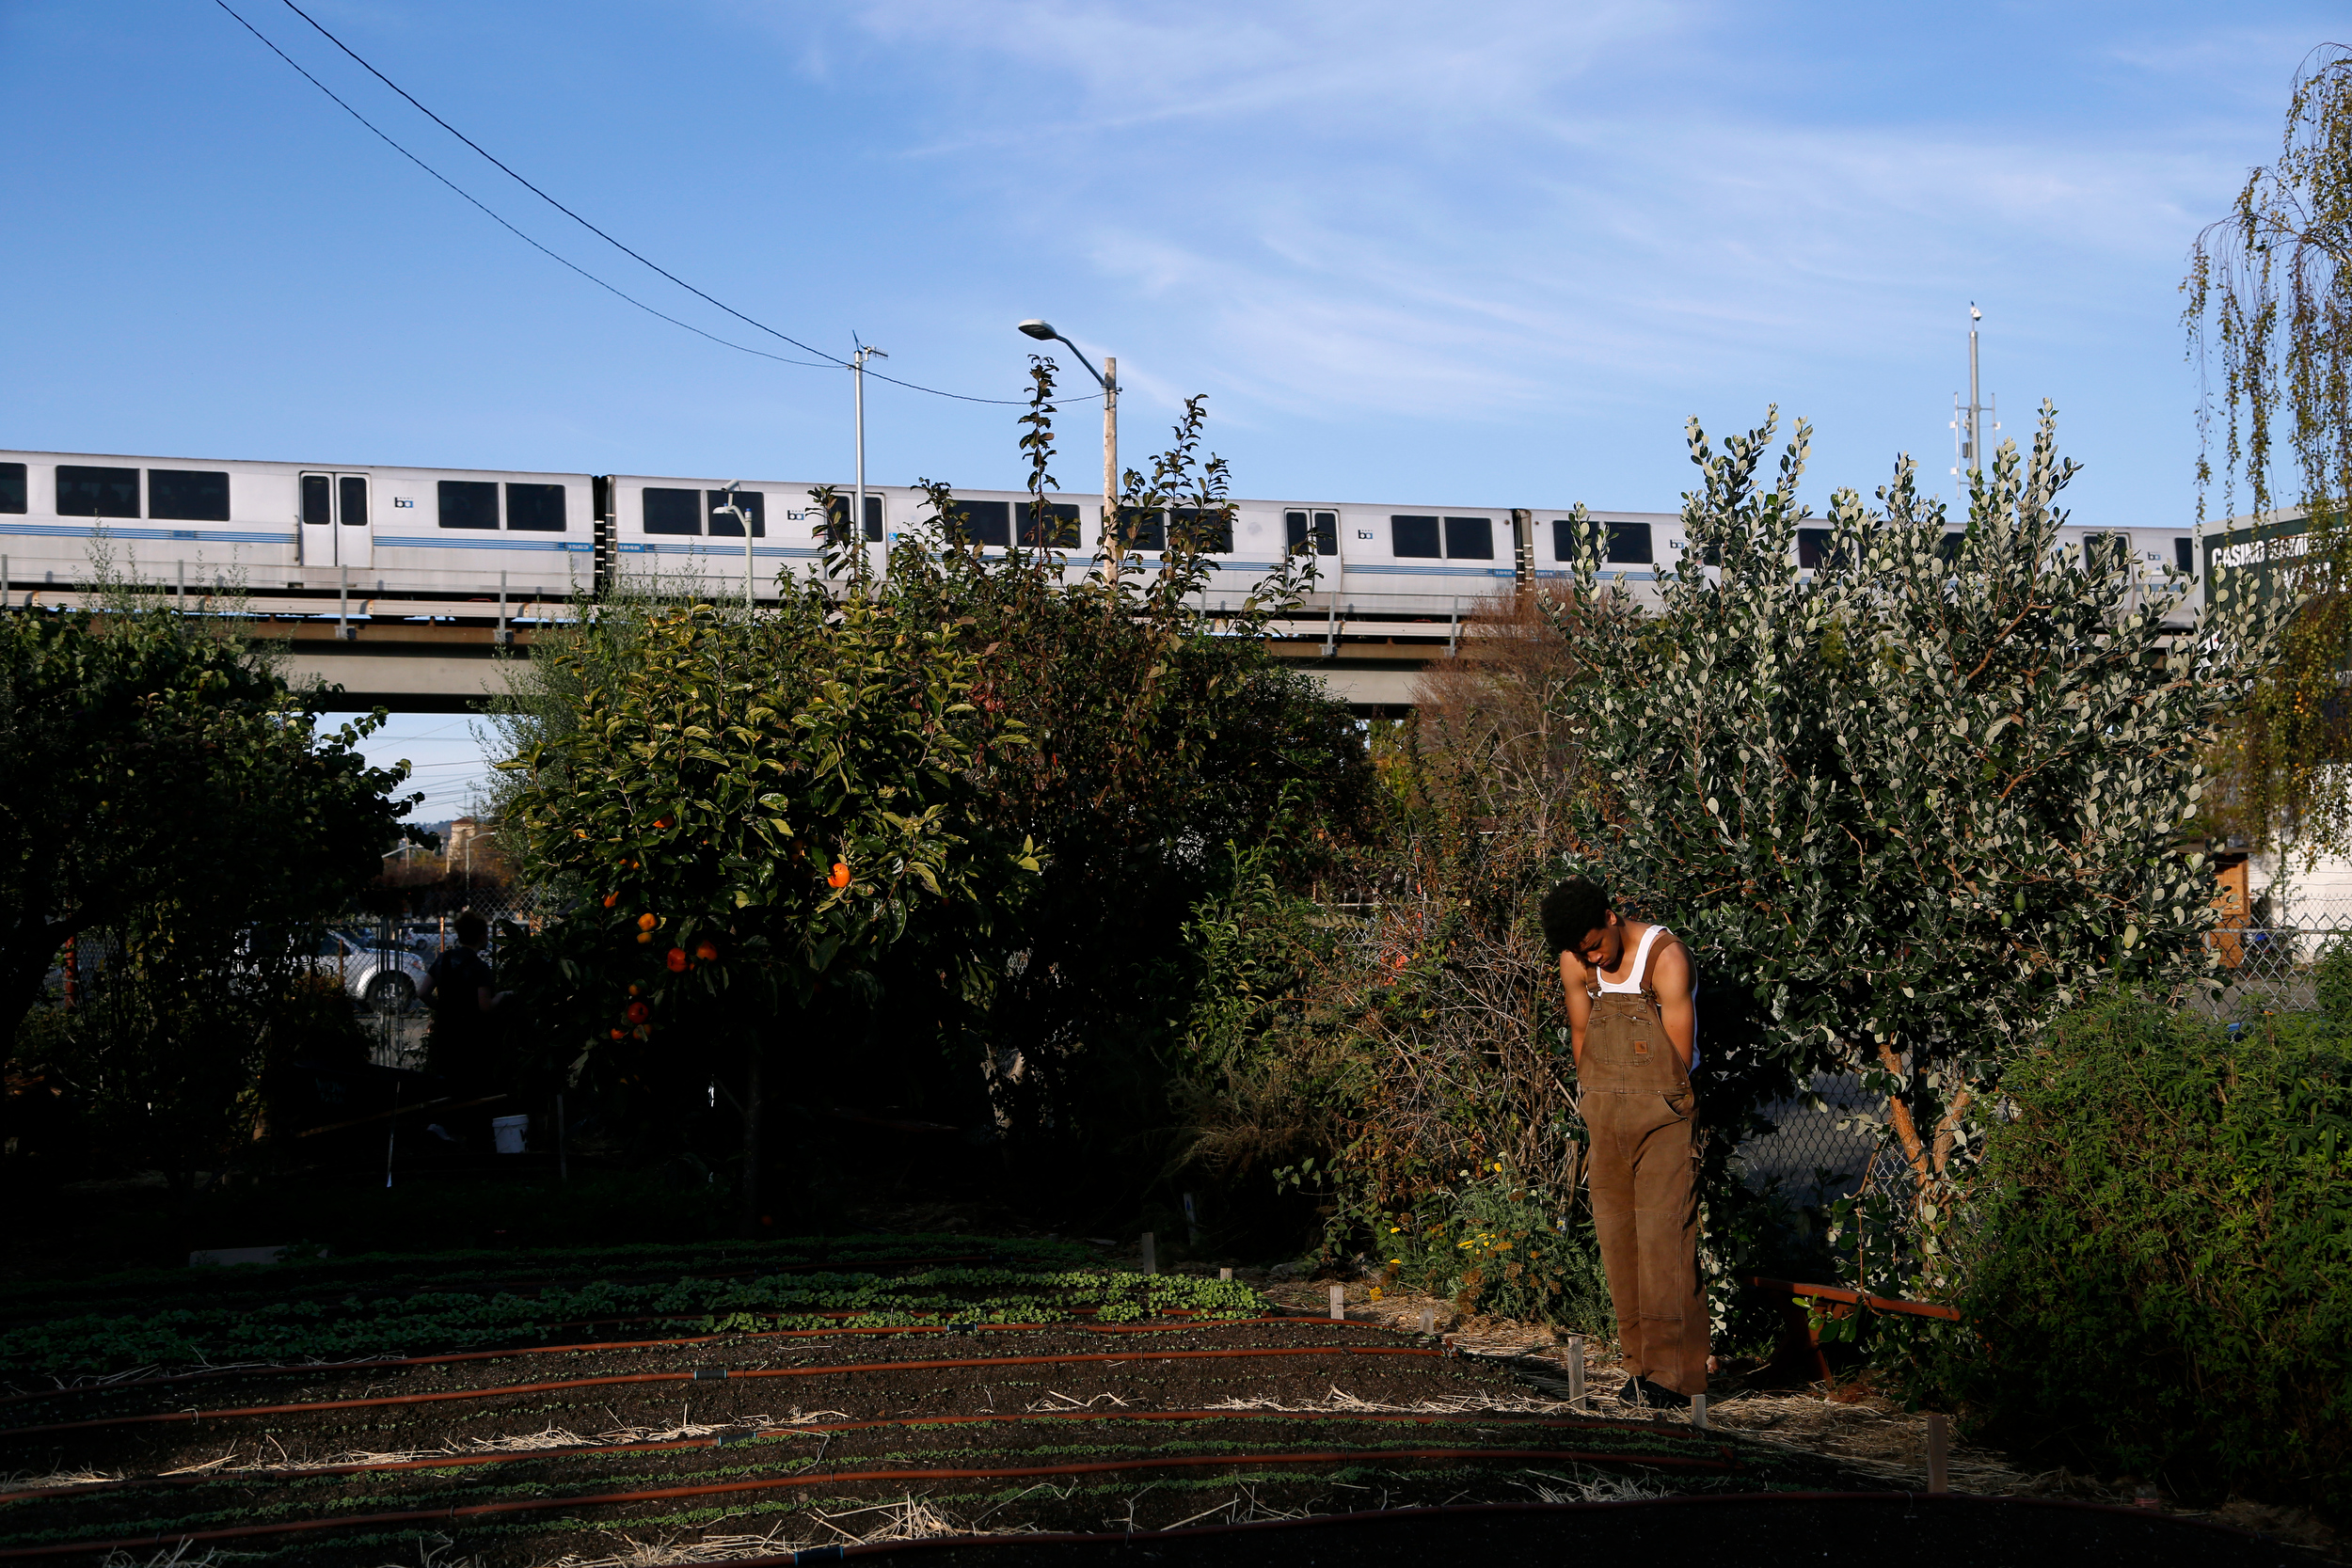 Ketwan with train, West Oakland Woods Farm, 2016